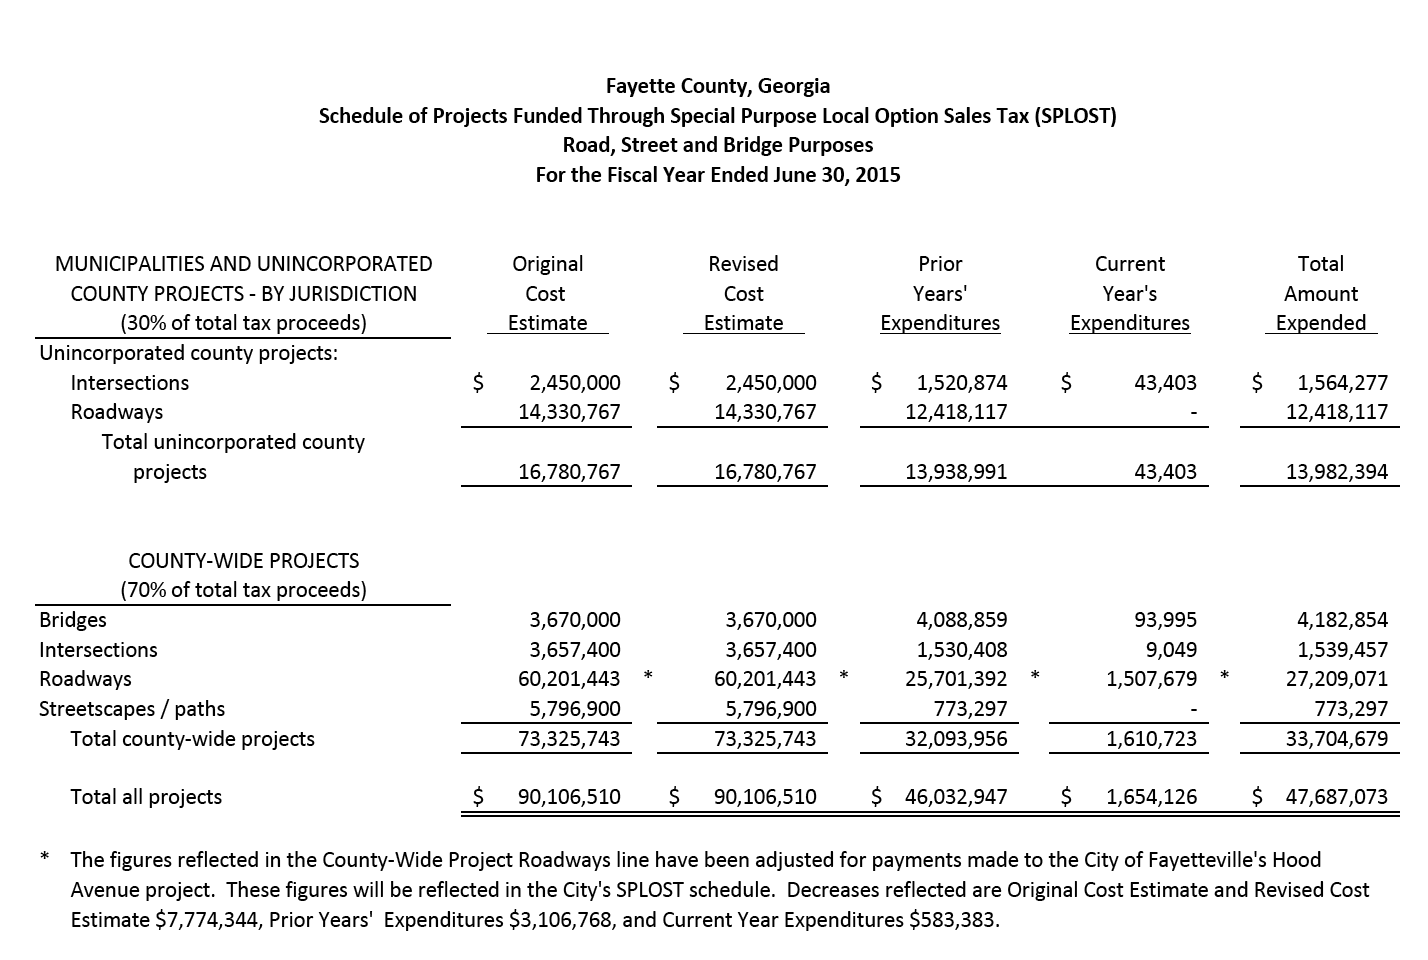 fayette county transportation s p l o s t expenditures and